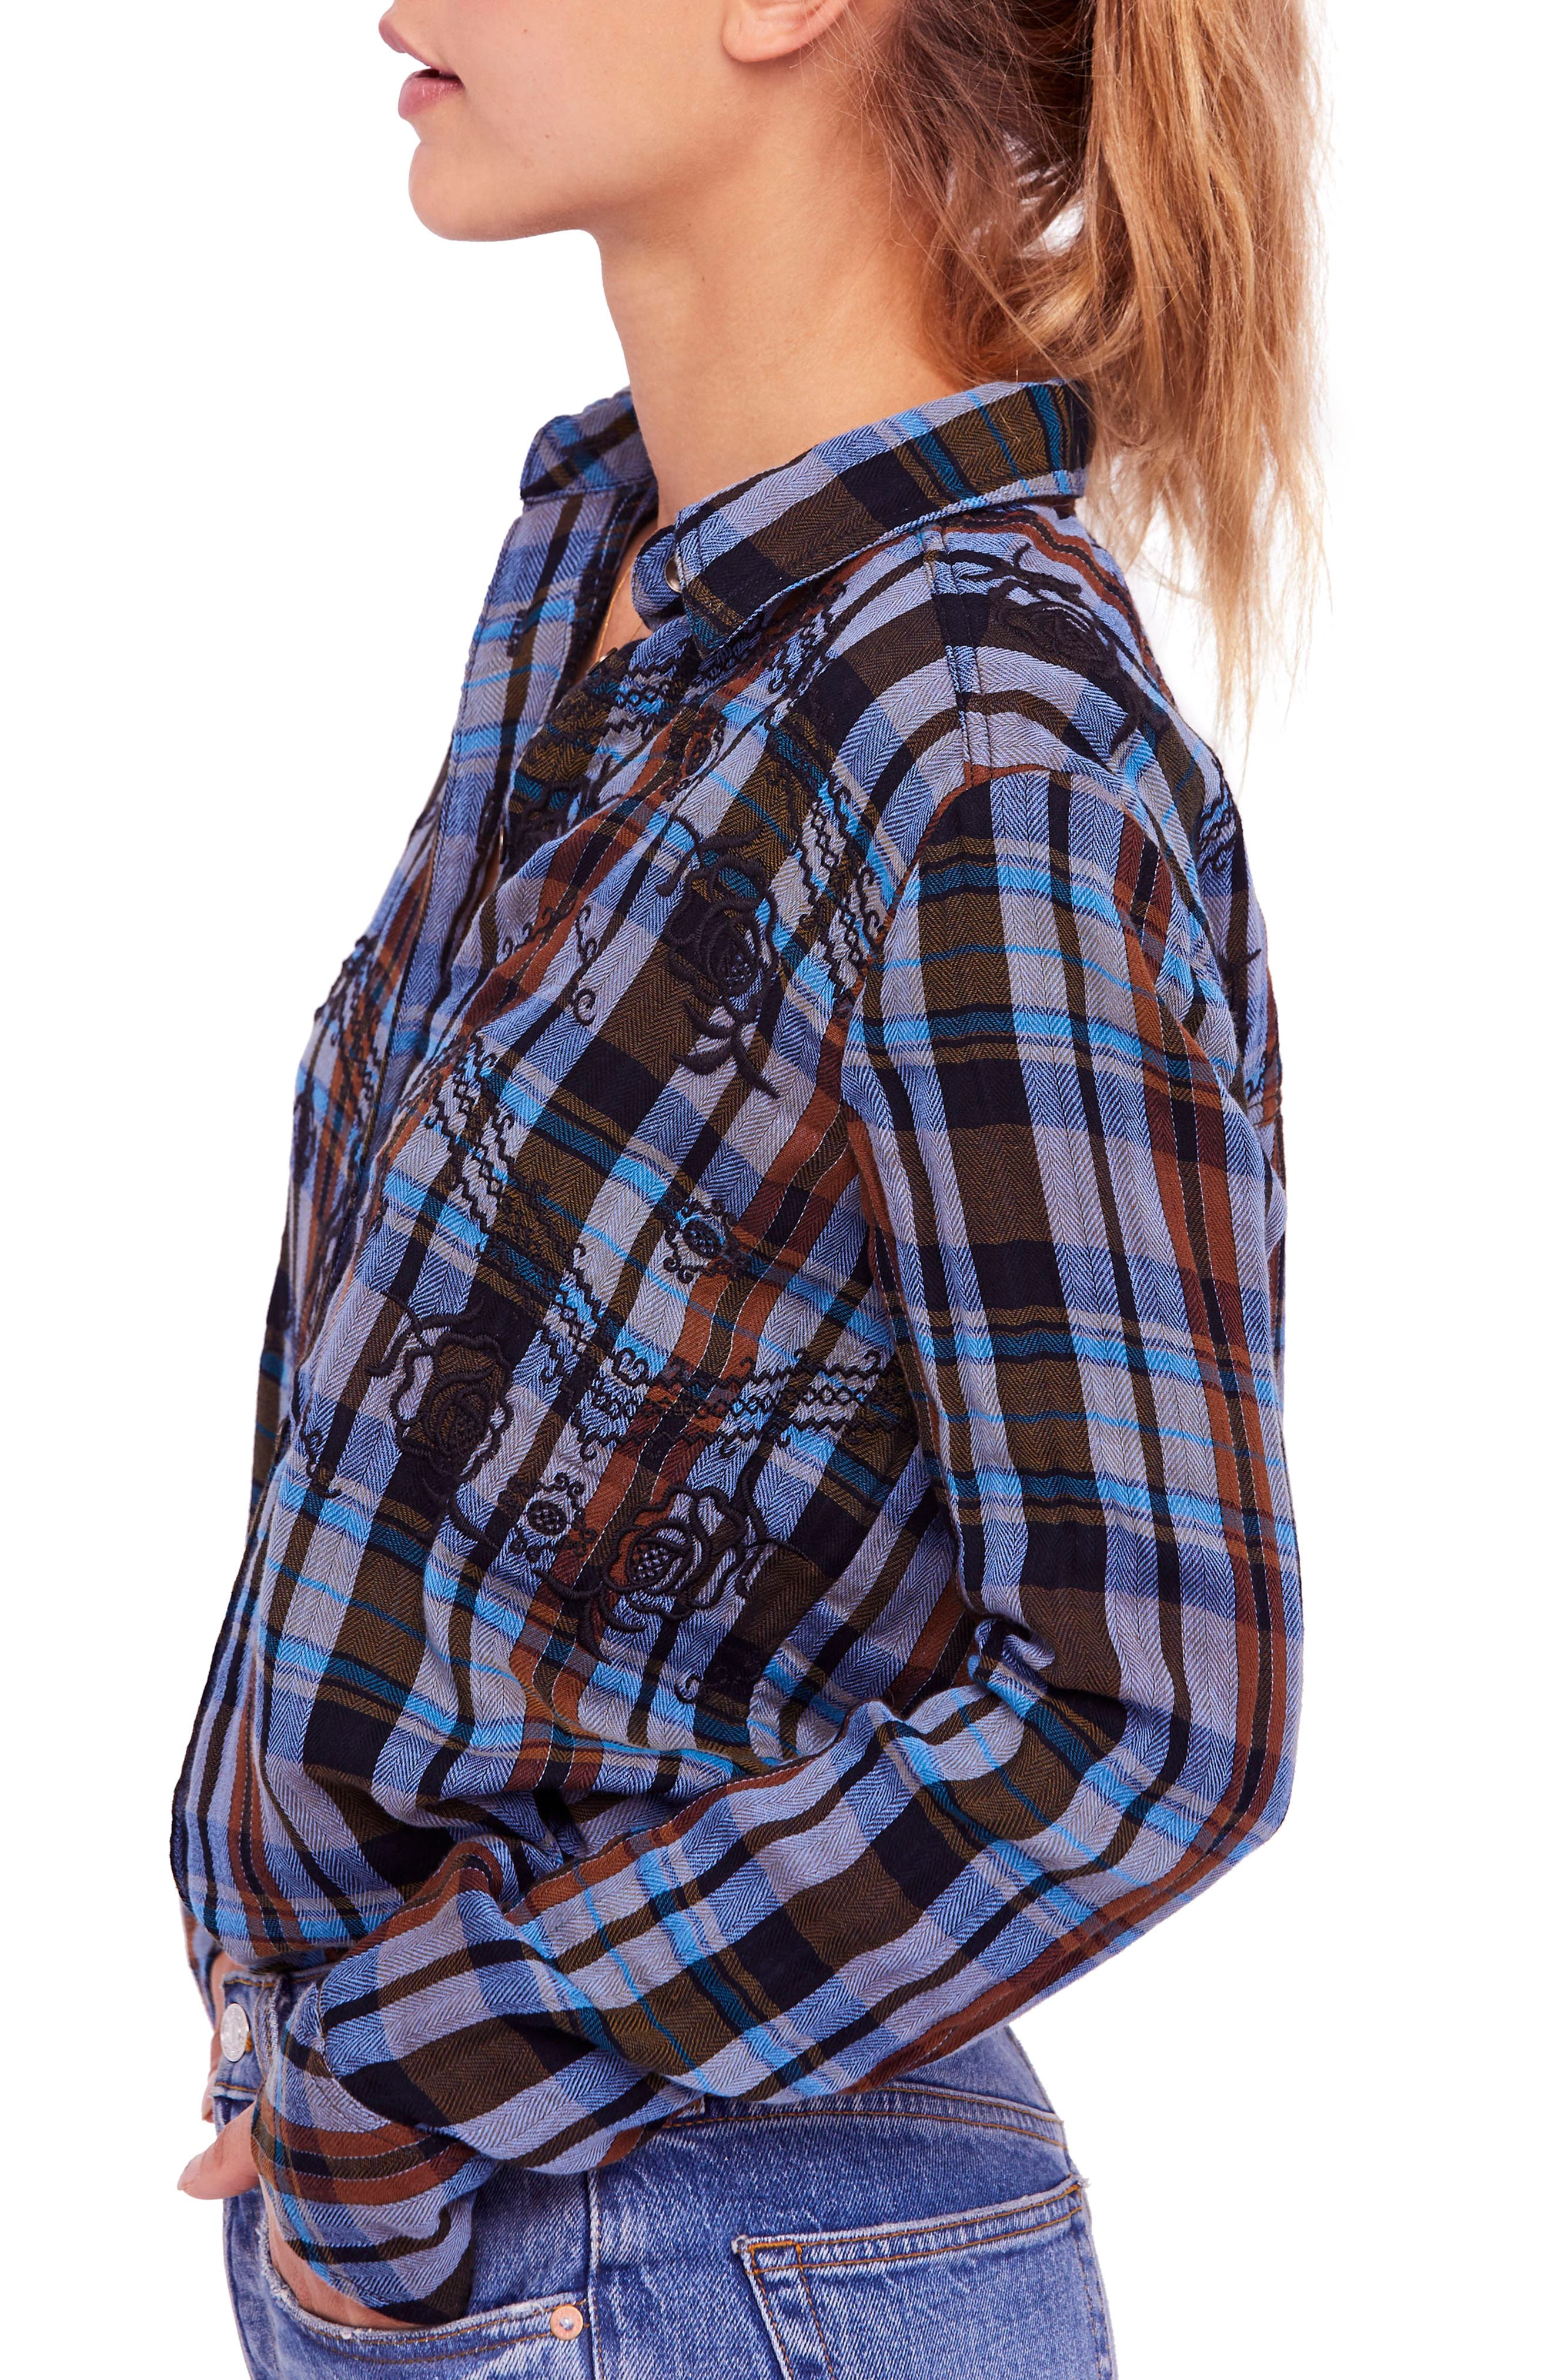 FREE PEOPLE,                             Magical Plaid Embroidered Shirt,                             Alternate thumbnail 3, color,                             001